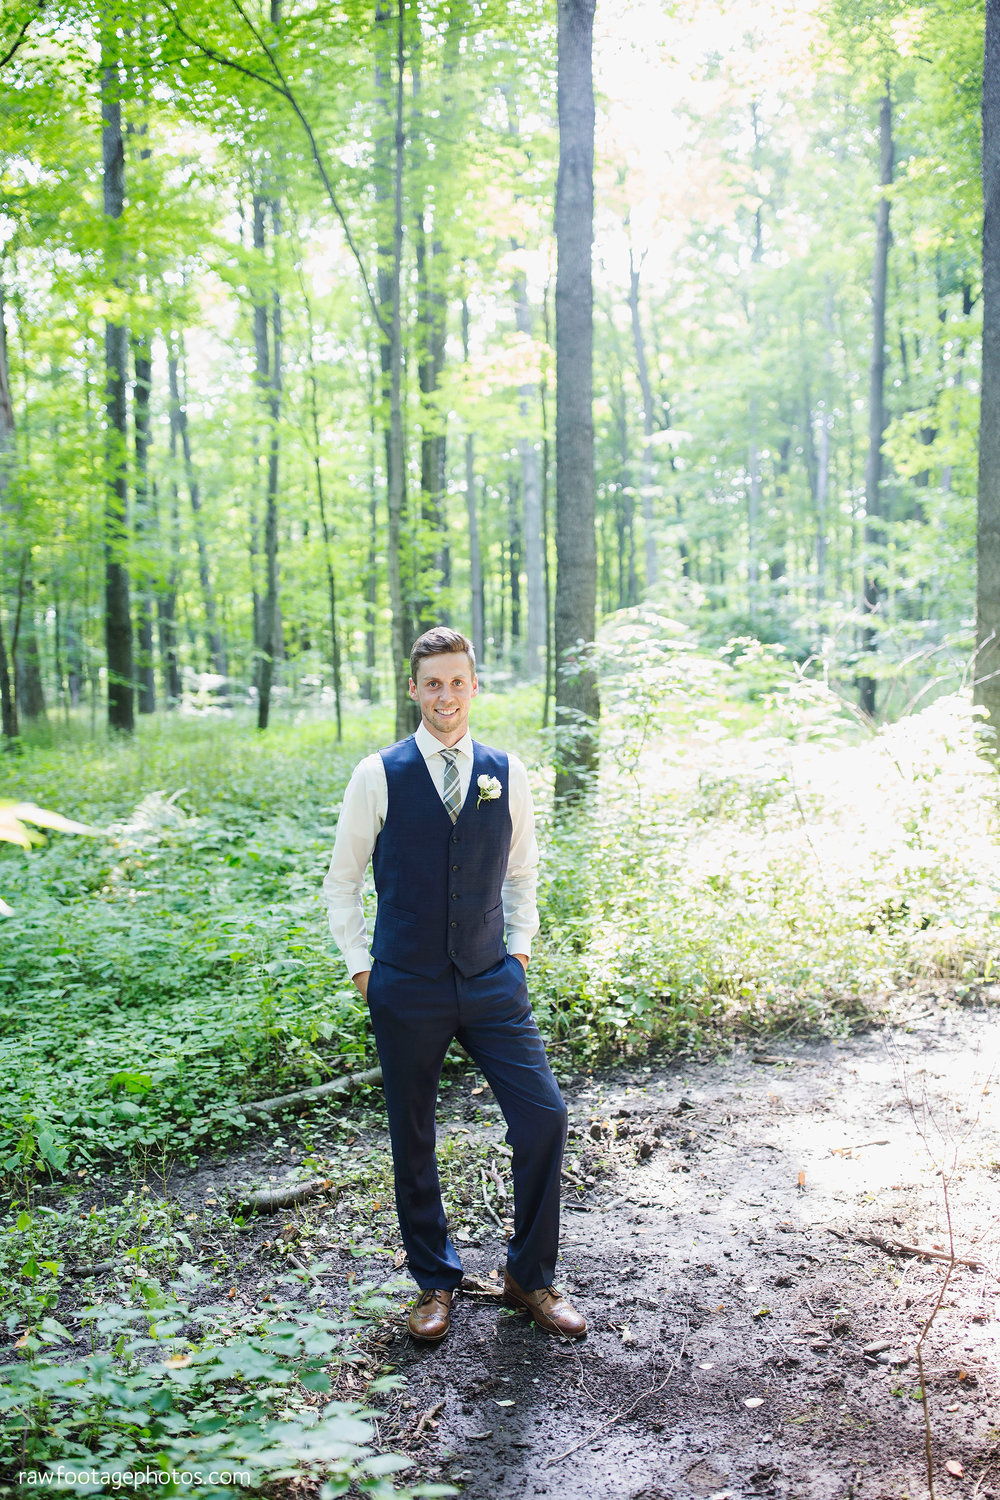 London_Ontario_Wedding_Photographer-Raw_Footage_photography-Forest_wedding-Woodsy_wedding-DIY_Wedding-Candid_Wedding_Photography065.jpg